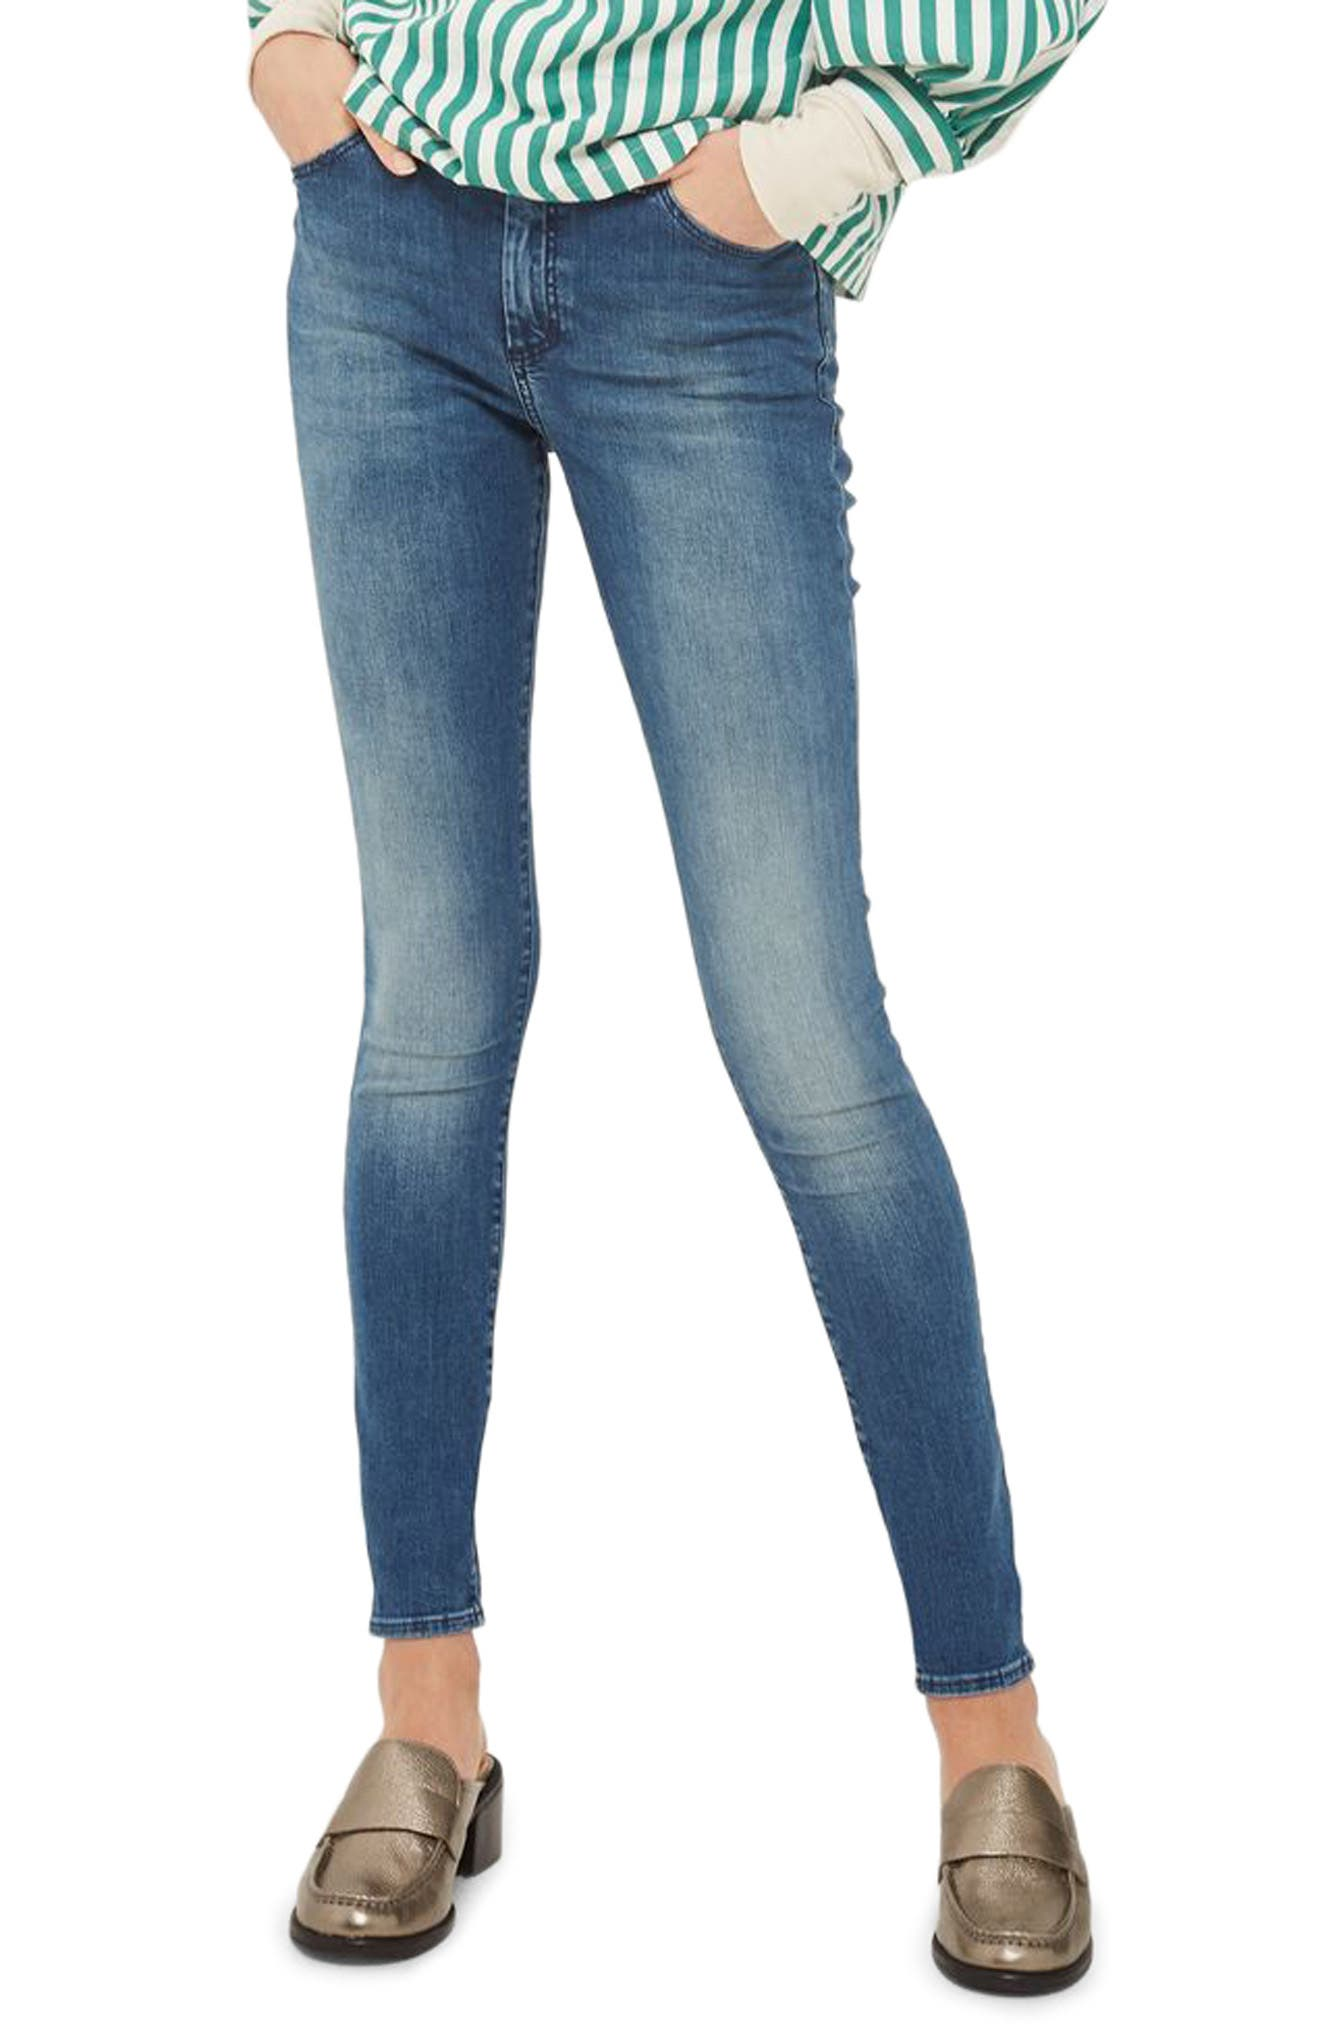 Leigh Skinny Jeans,                         Main,                         color, 400